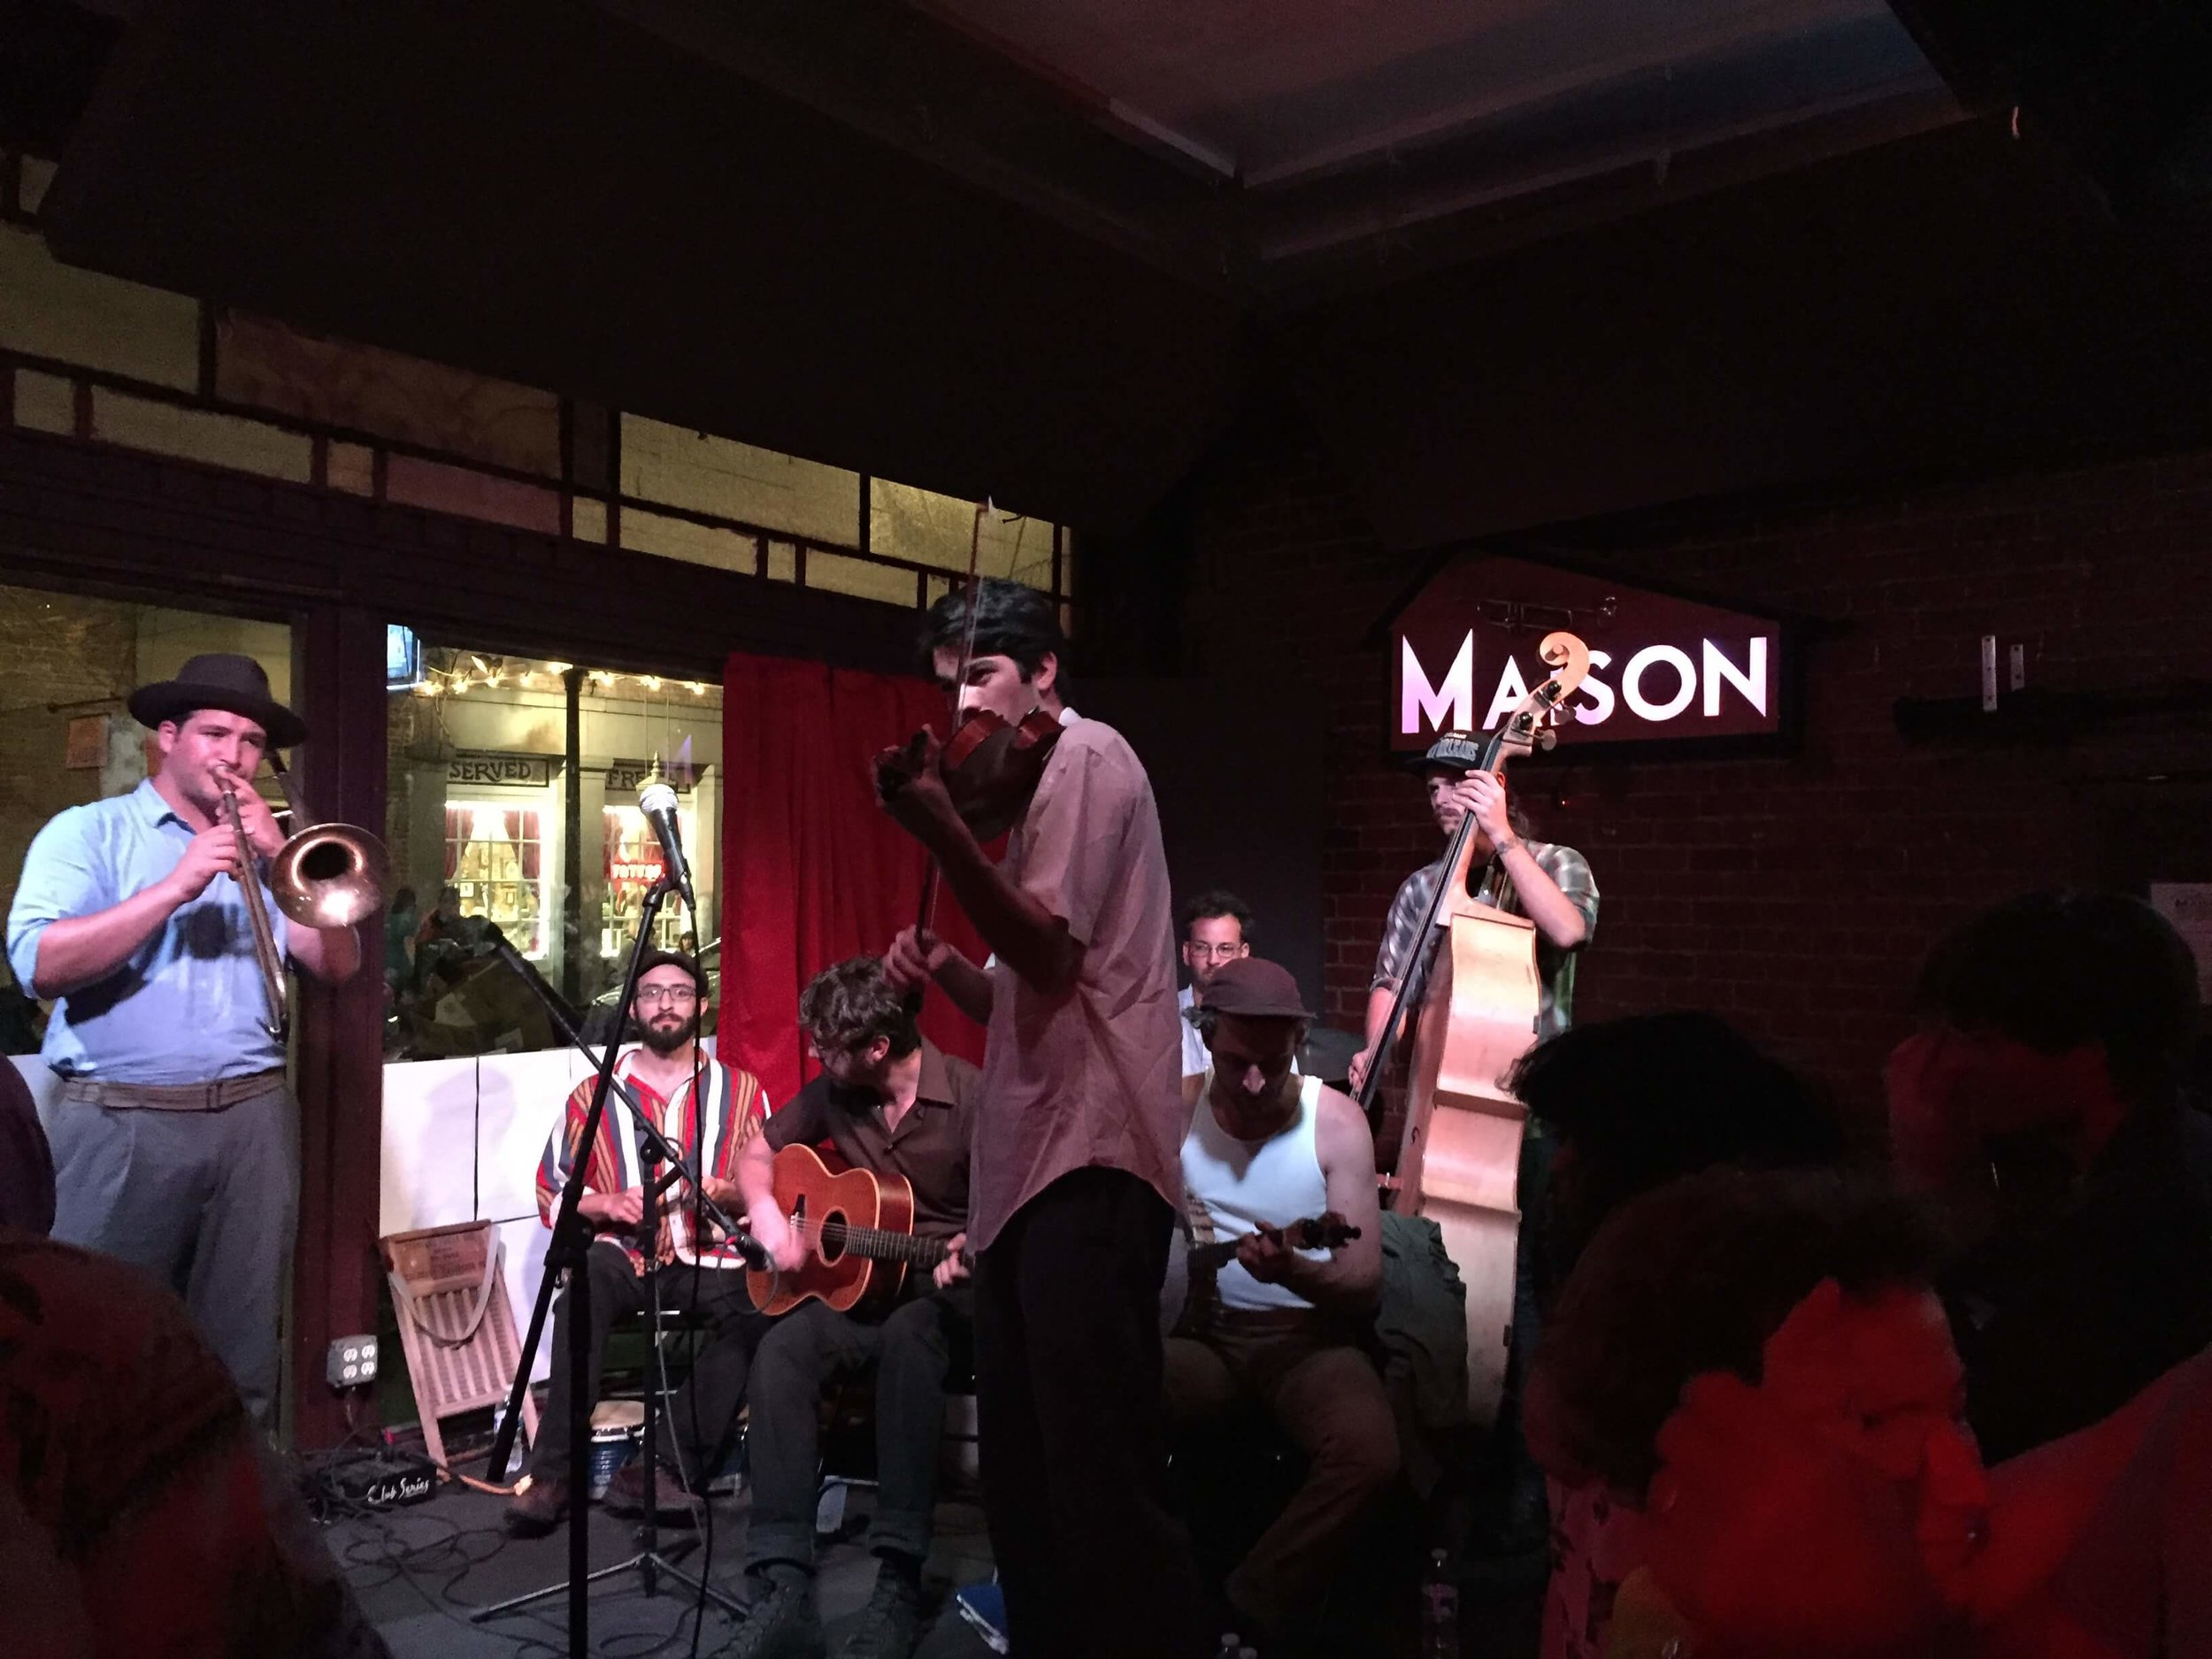 The Maison on Frenchmen Street